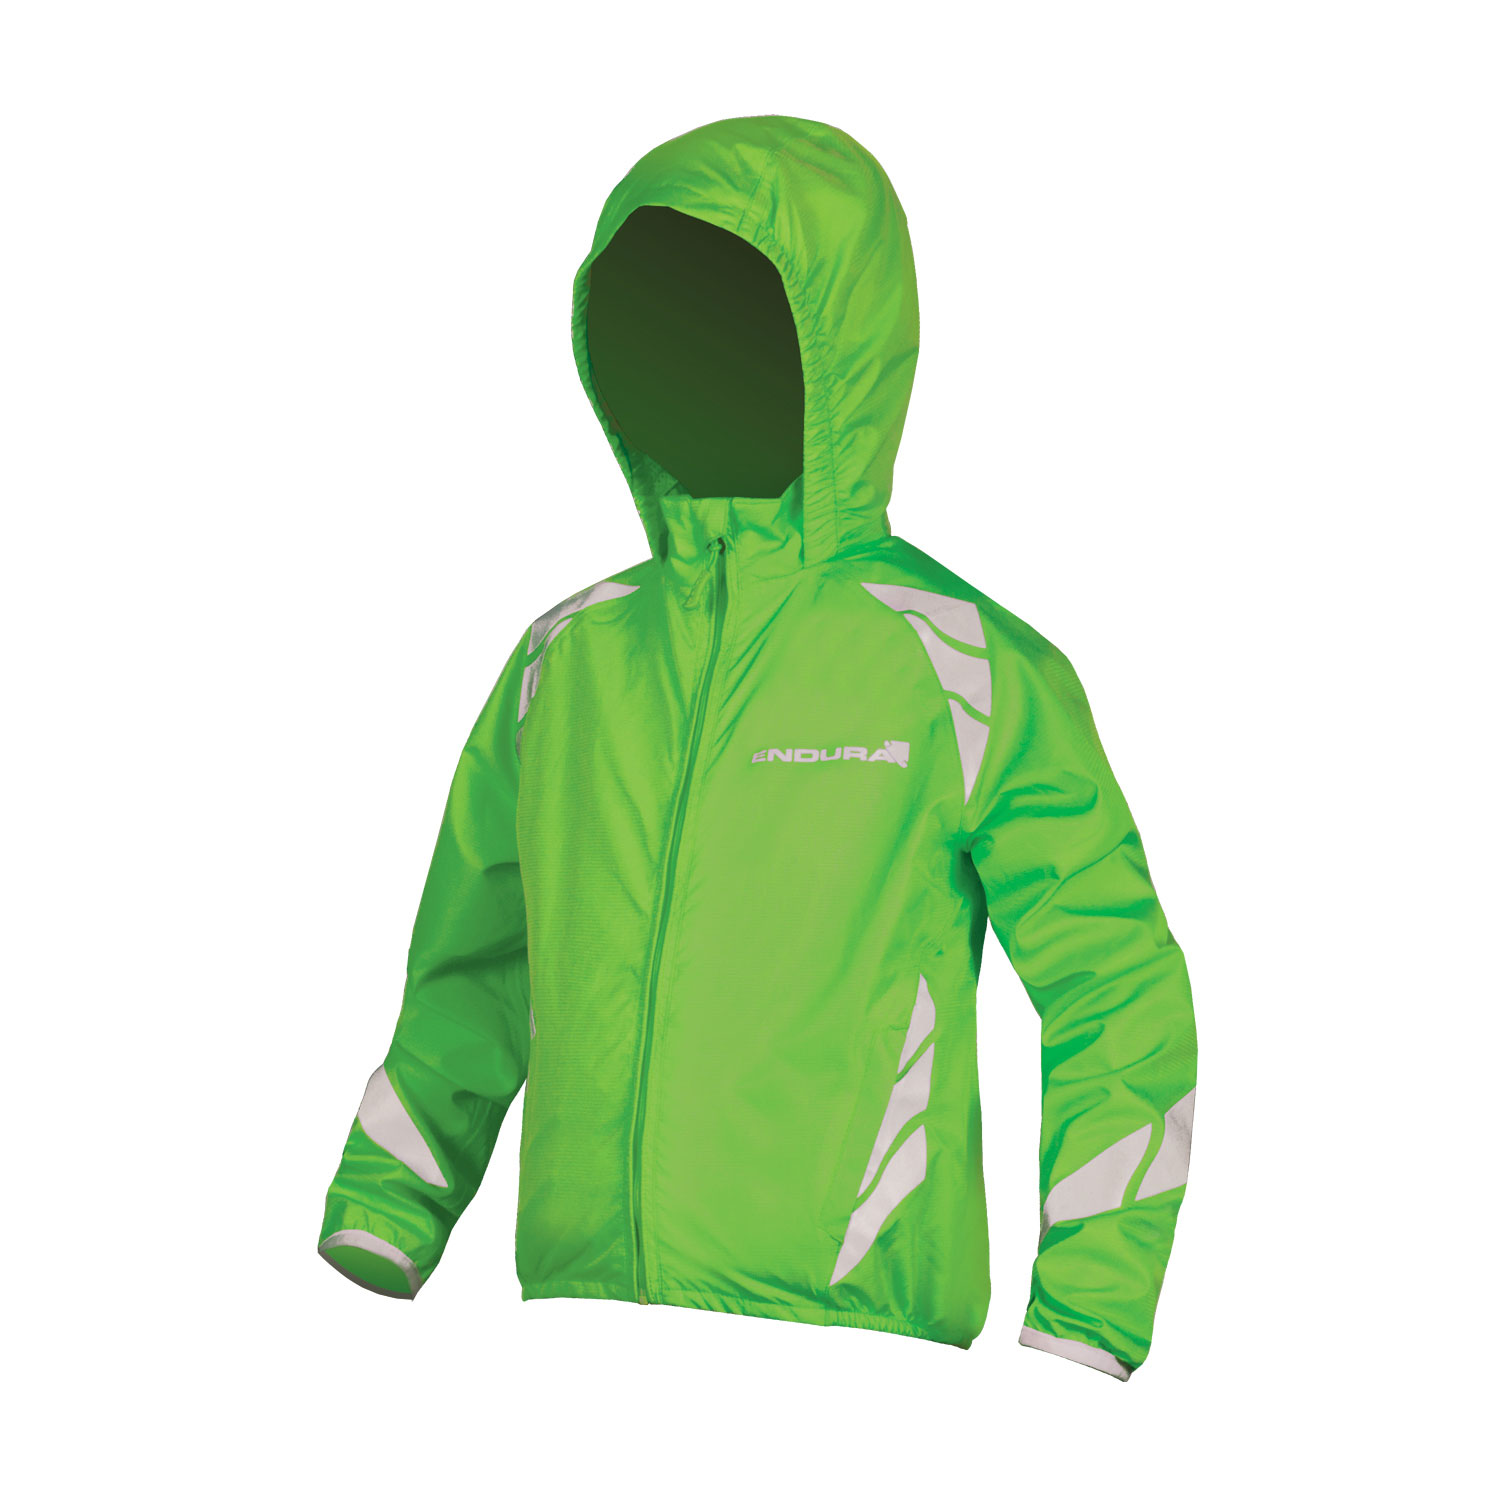 Kids Luminite Jacket II Hi-Viz Green